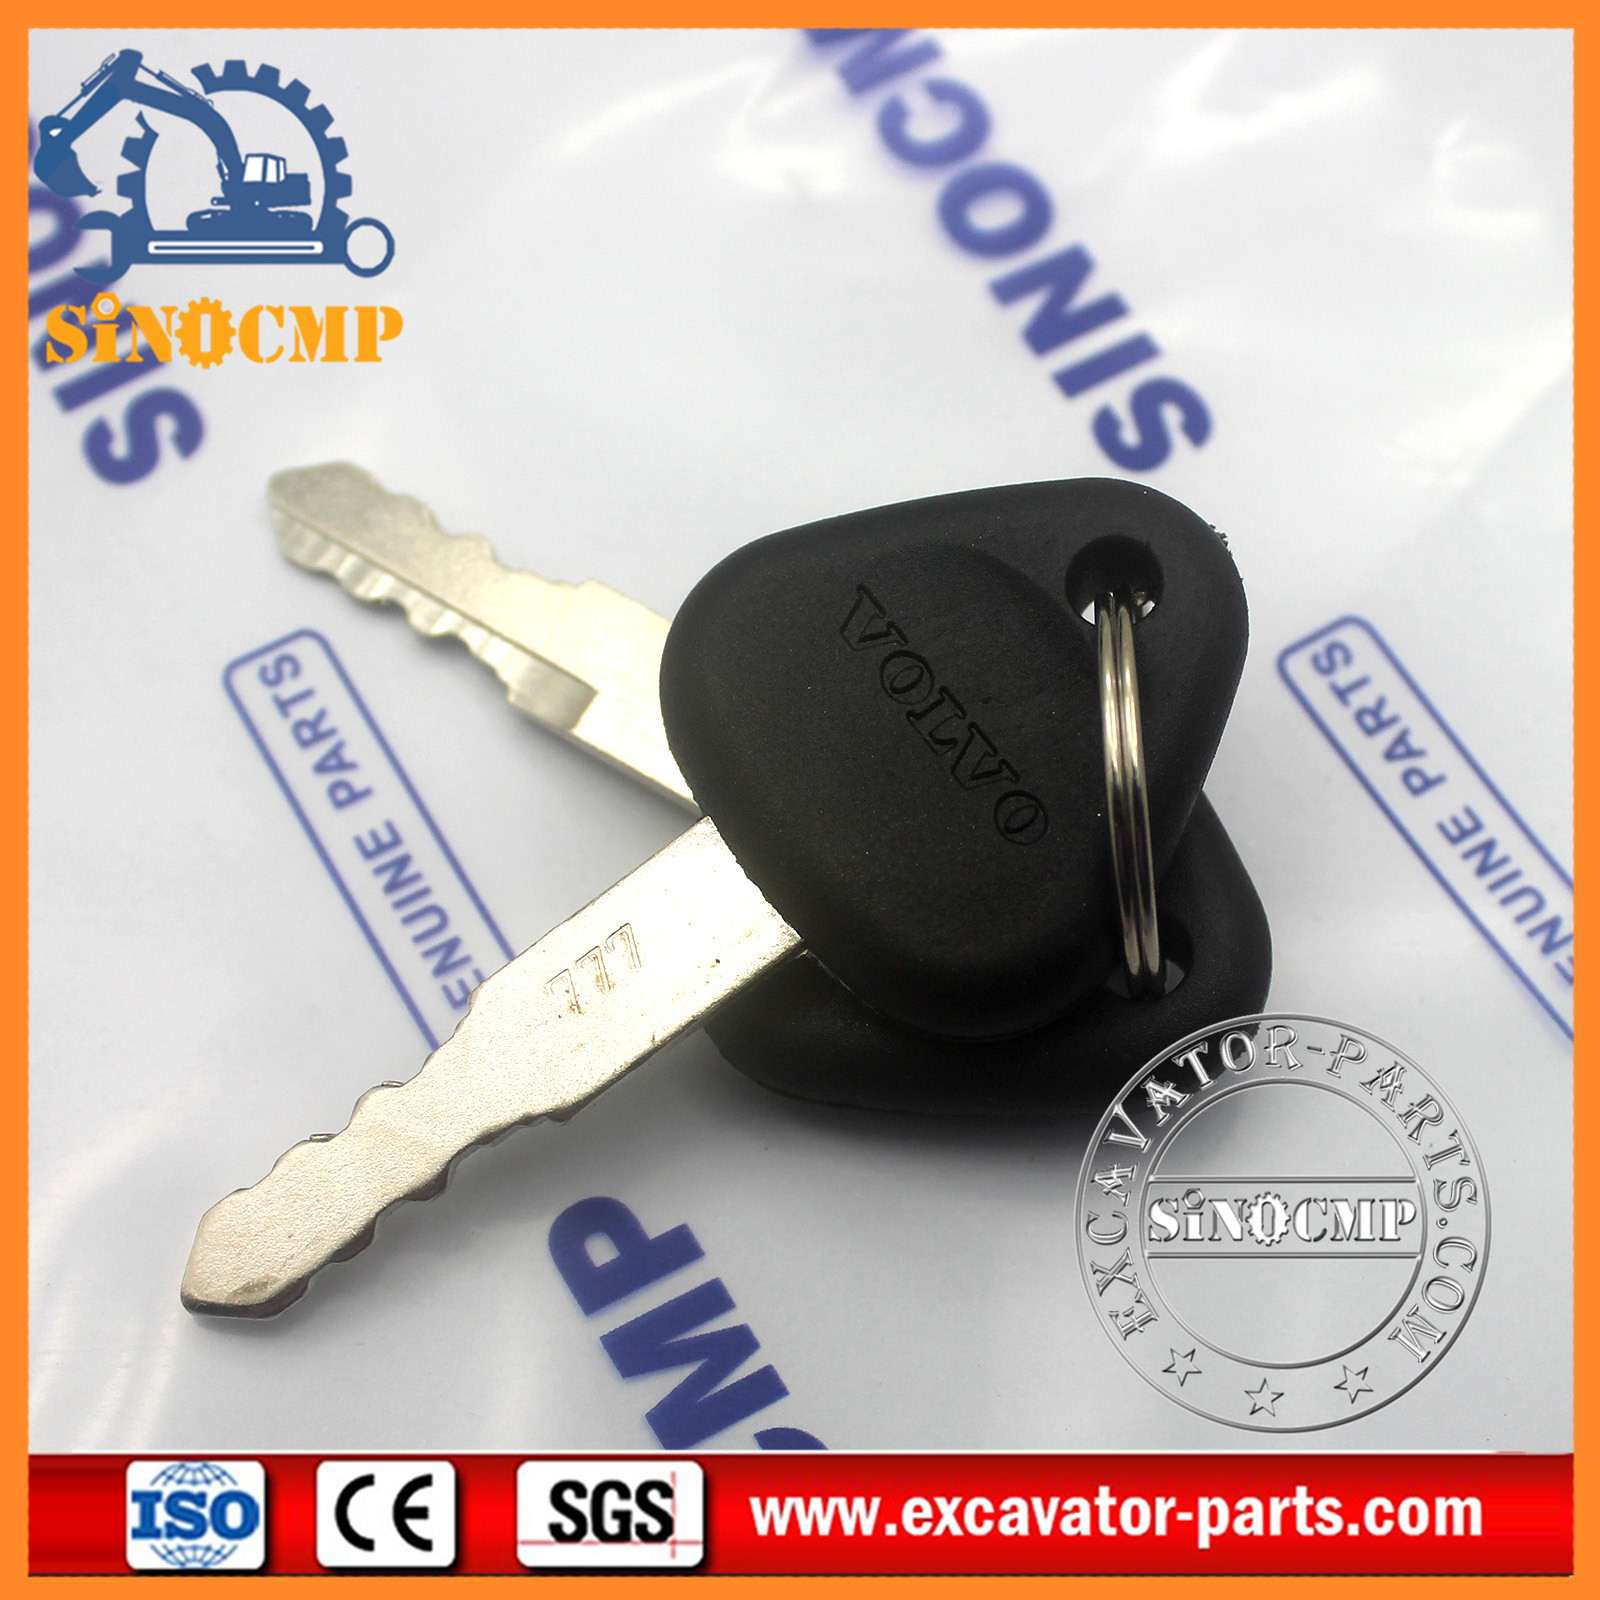 Volvo 777 Key Ignition Key for Volvo Excavator | SINOCMP